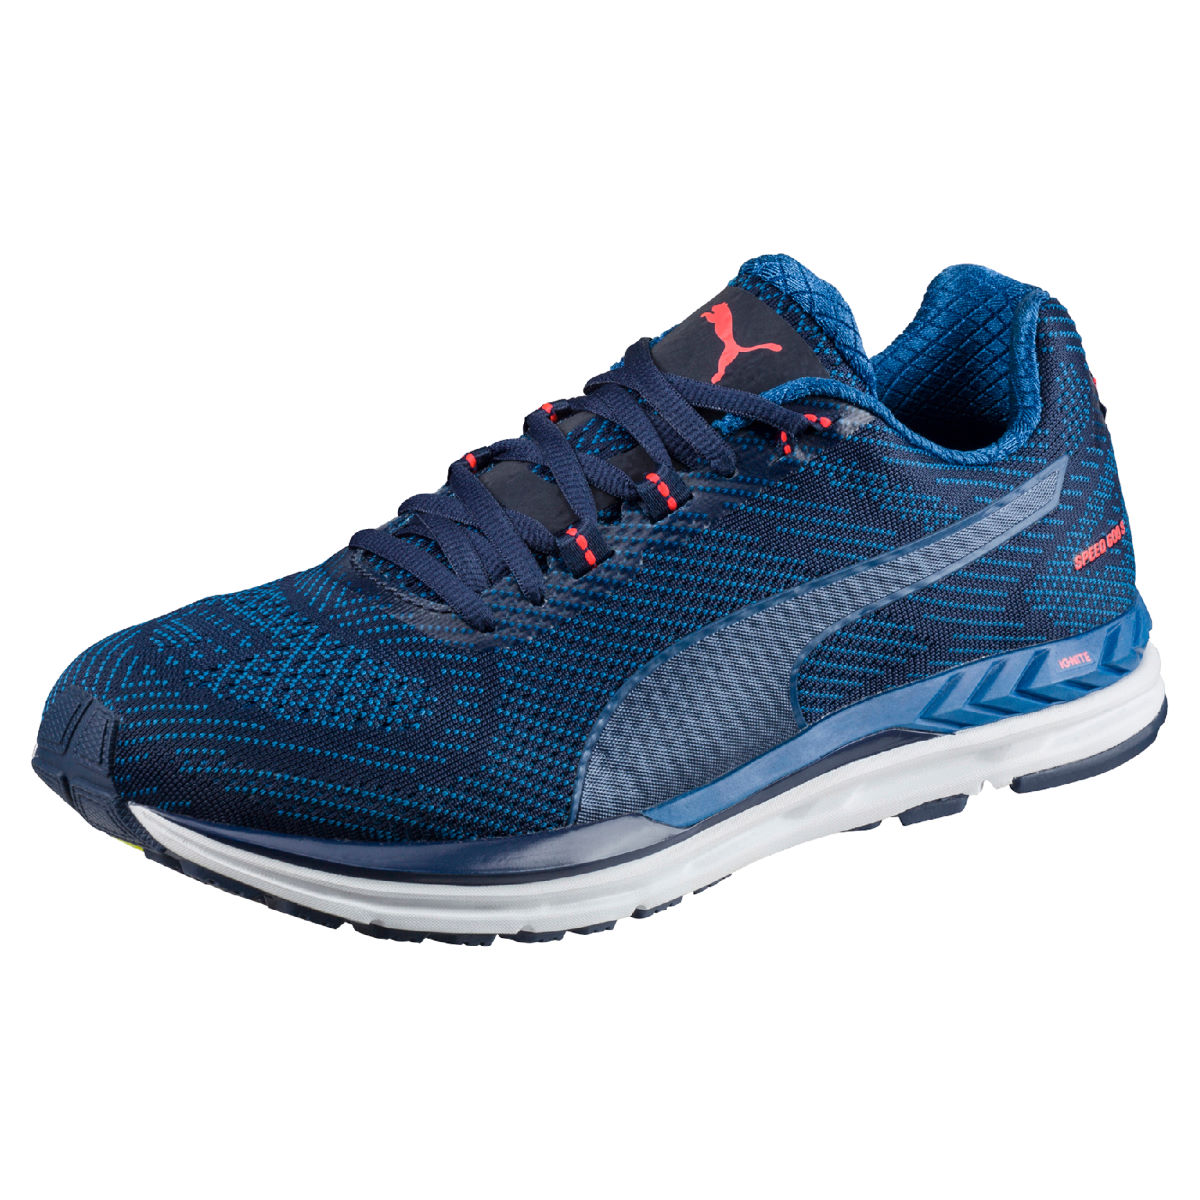 Chaussures Puma Speed 600 S Ignite - 10 Bleu